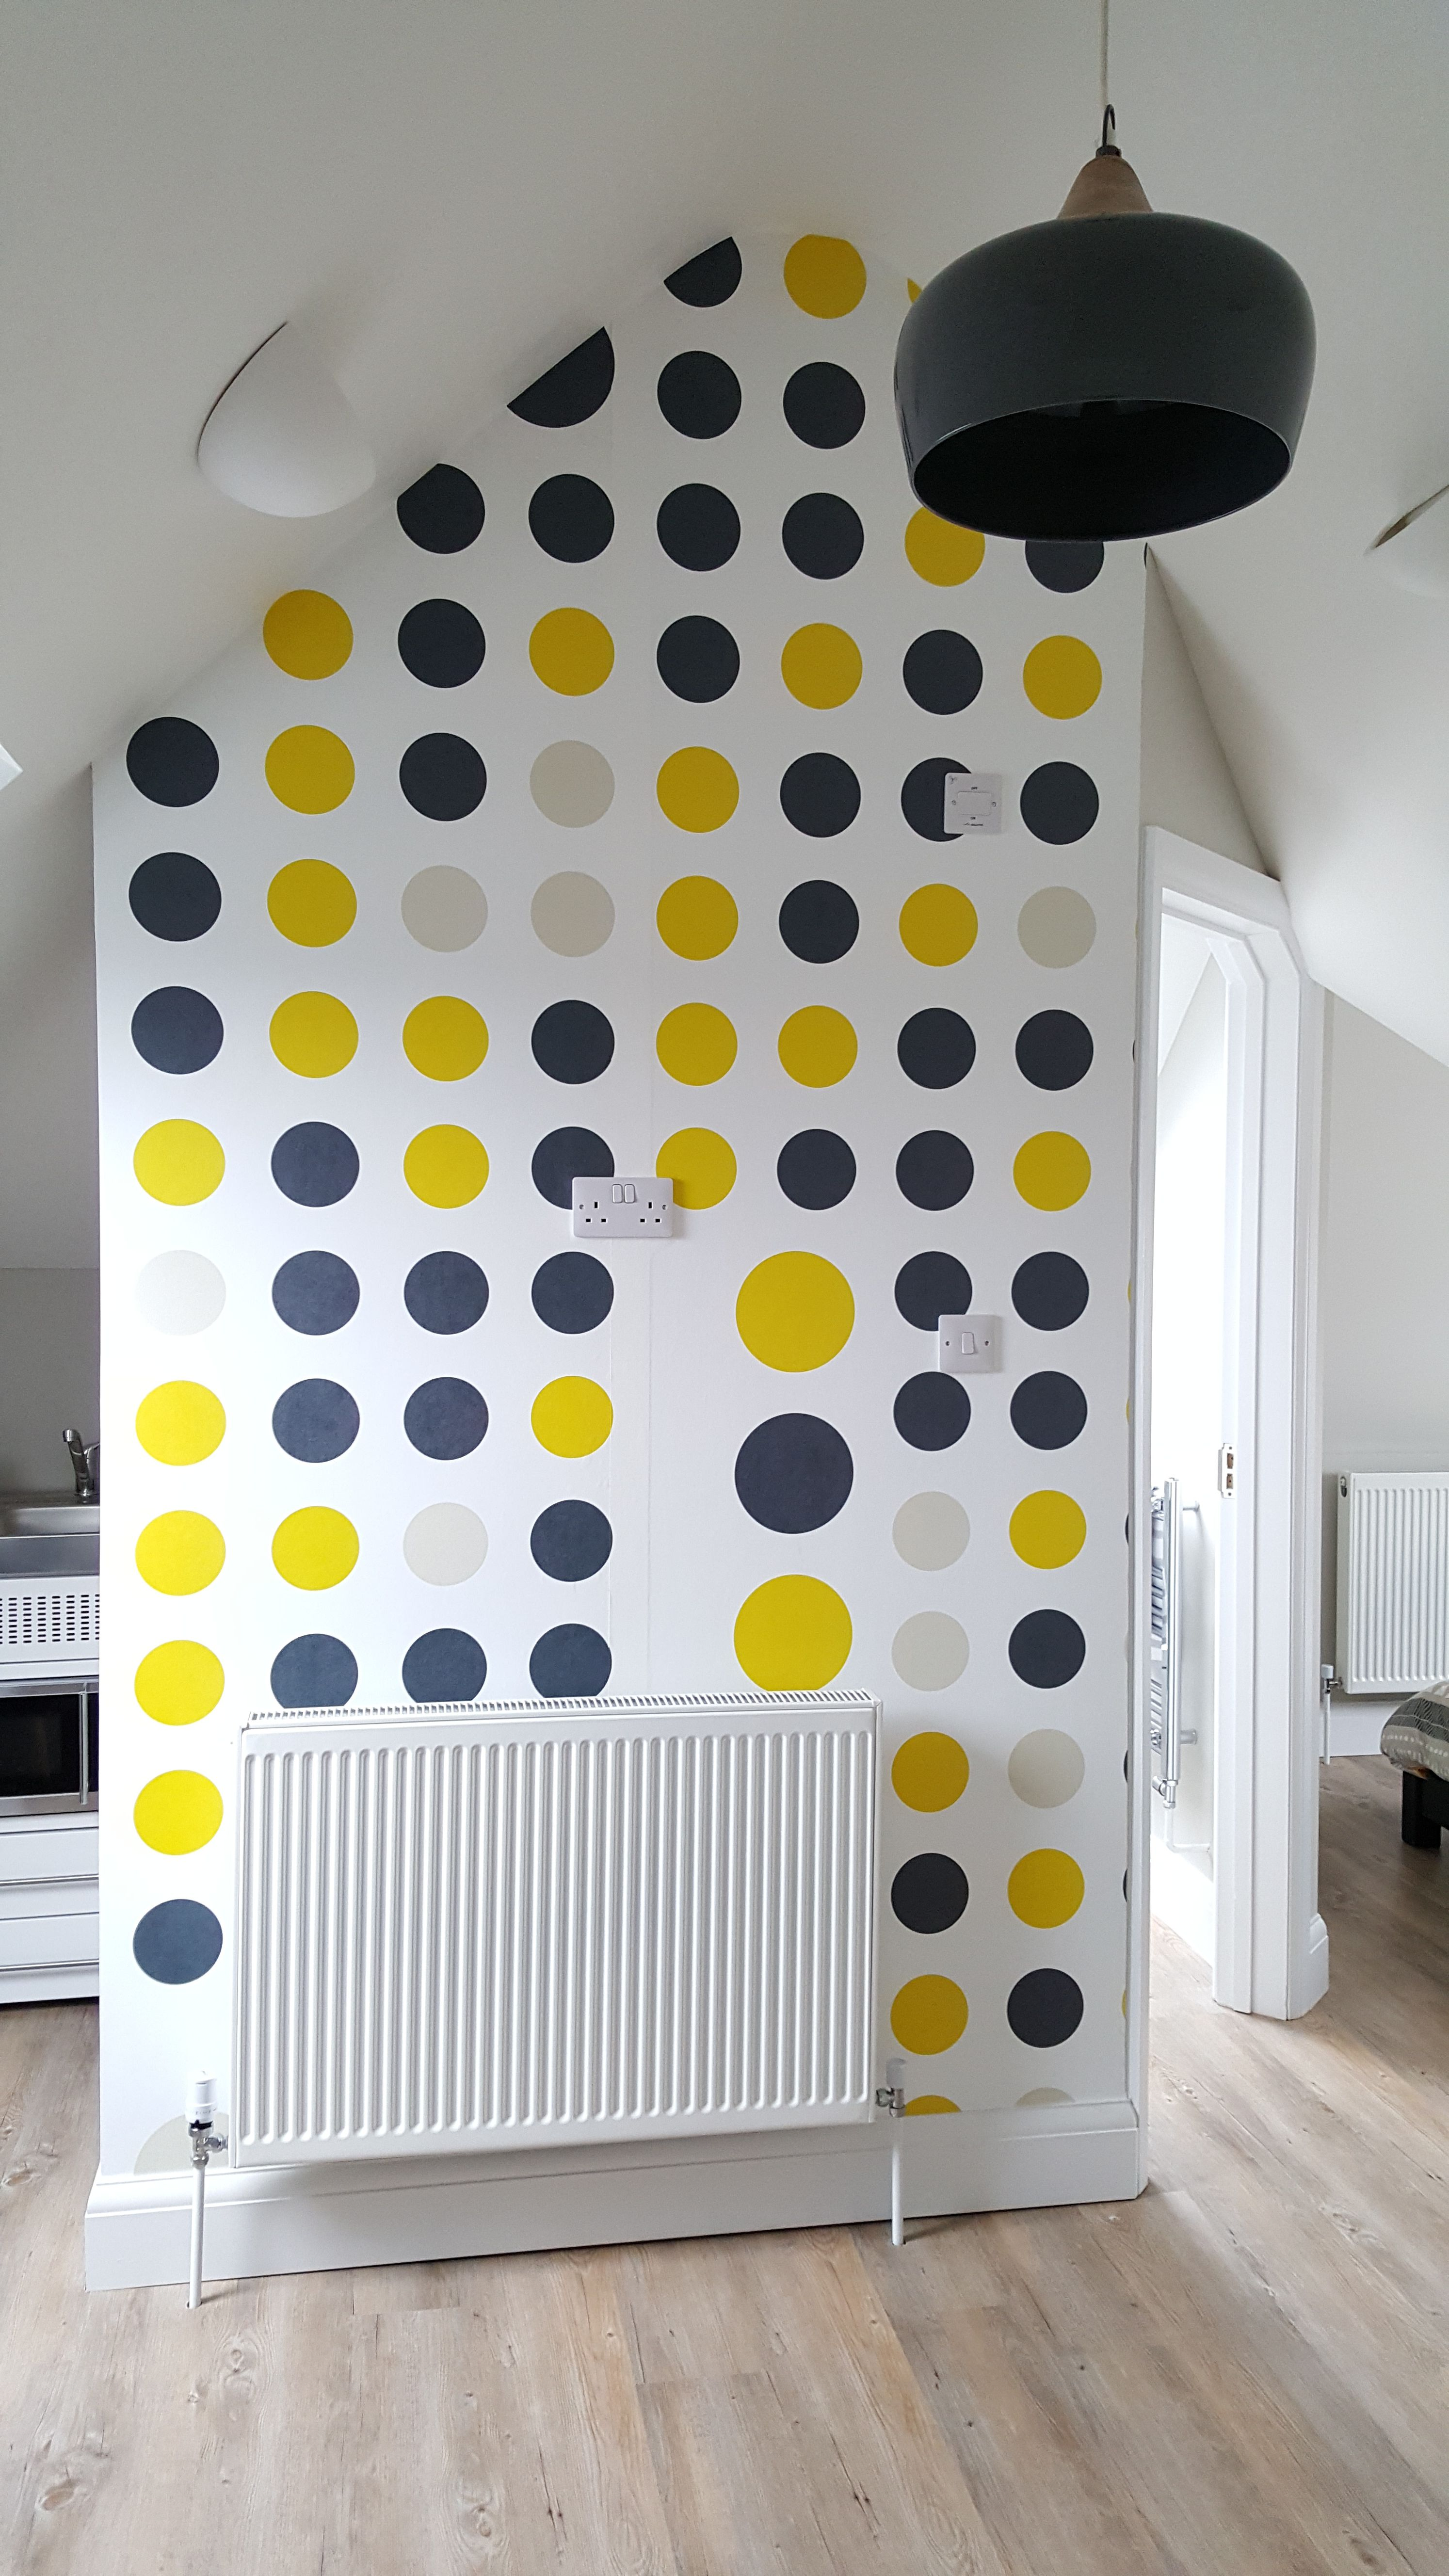 Loft conversion with bespoke dots feature wall